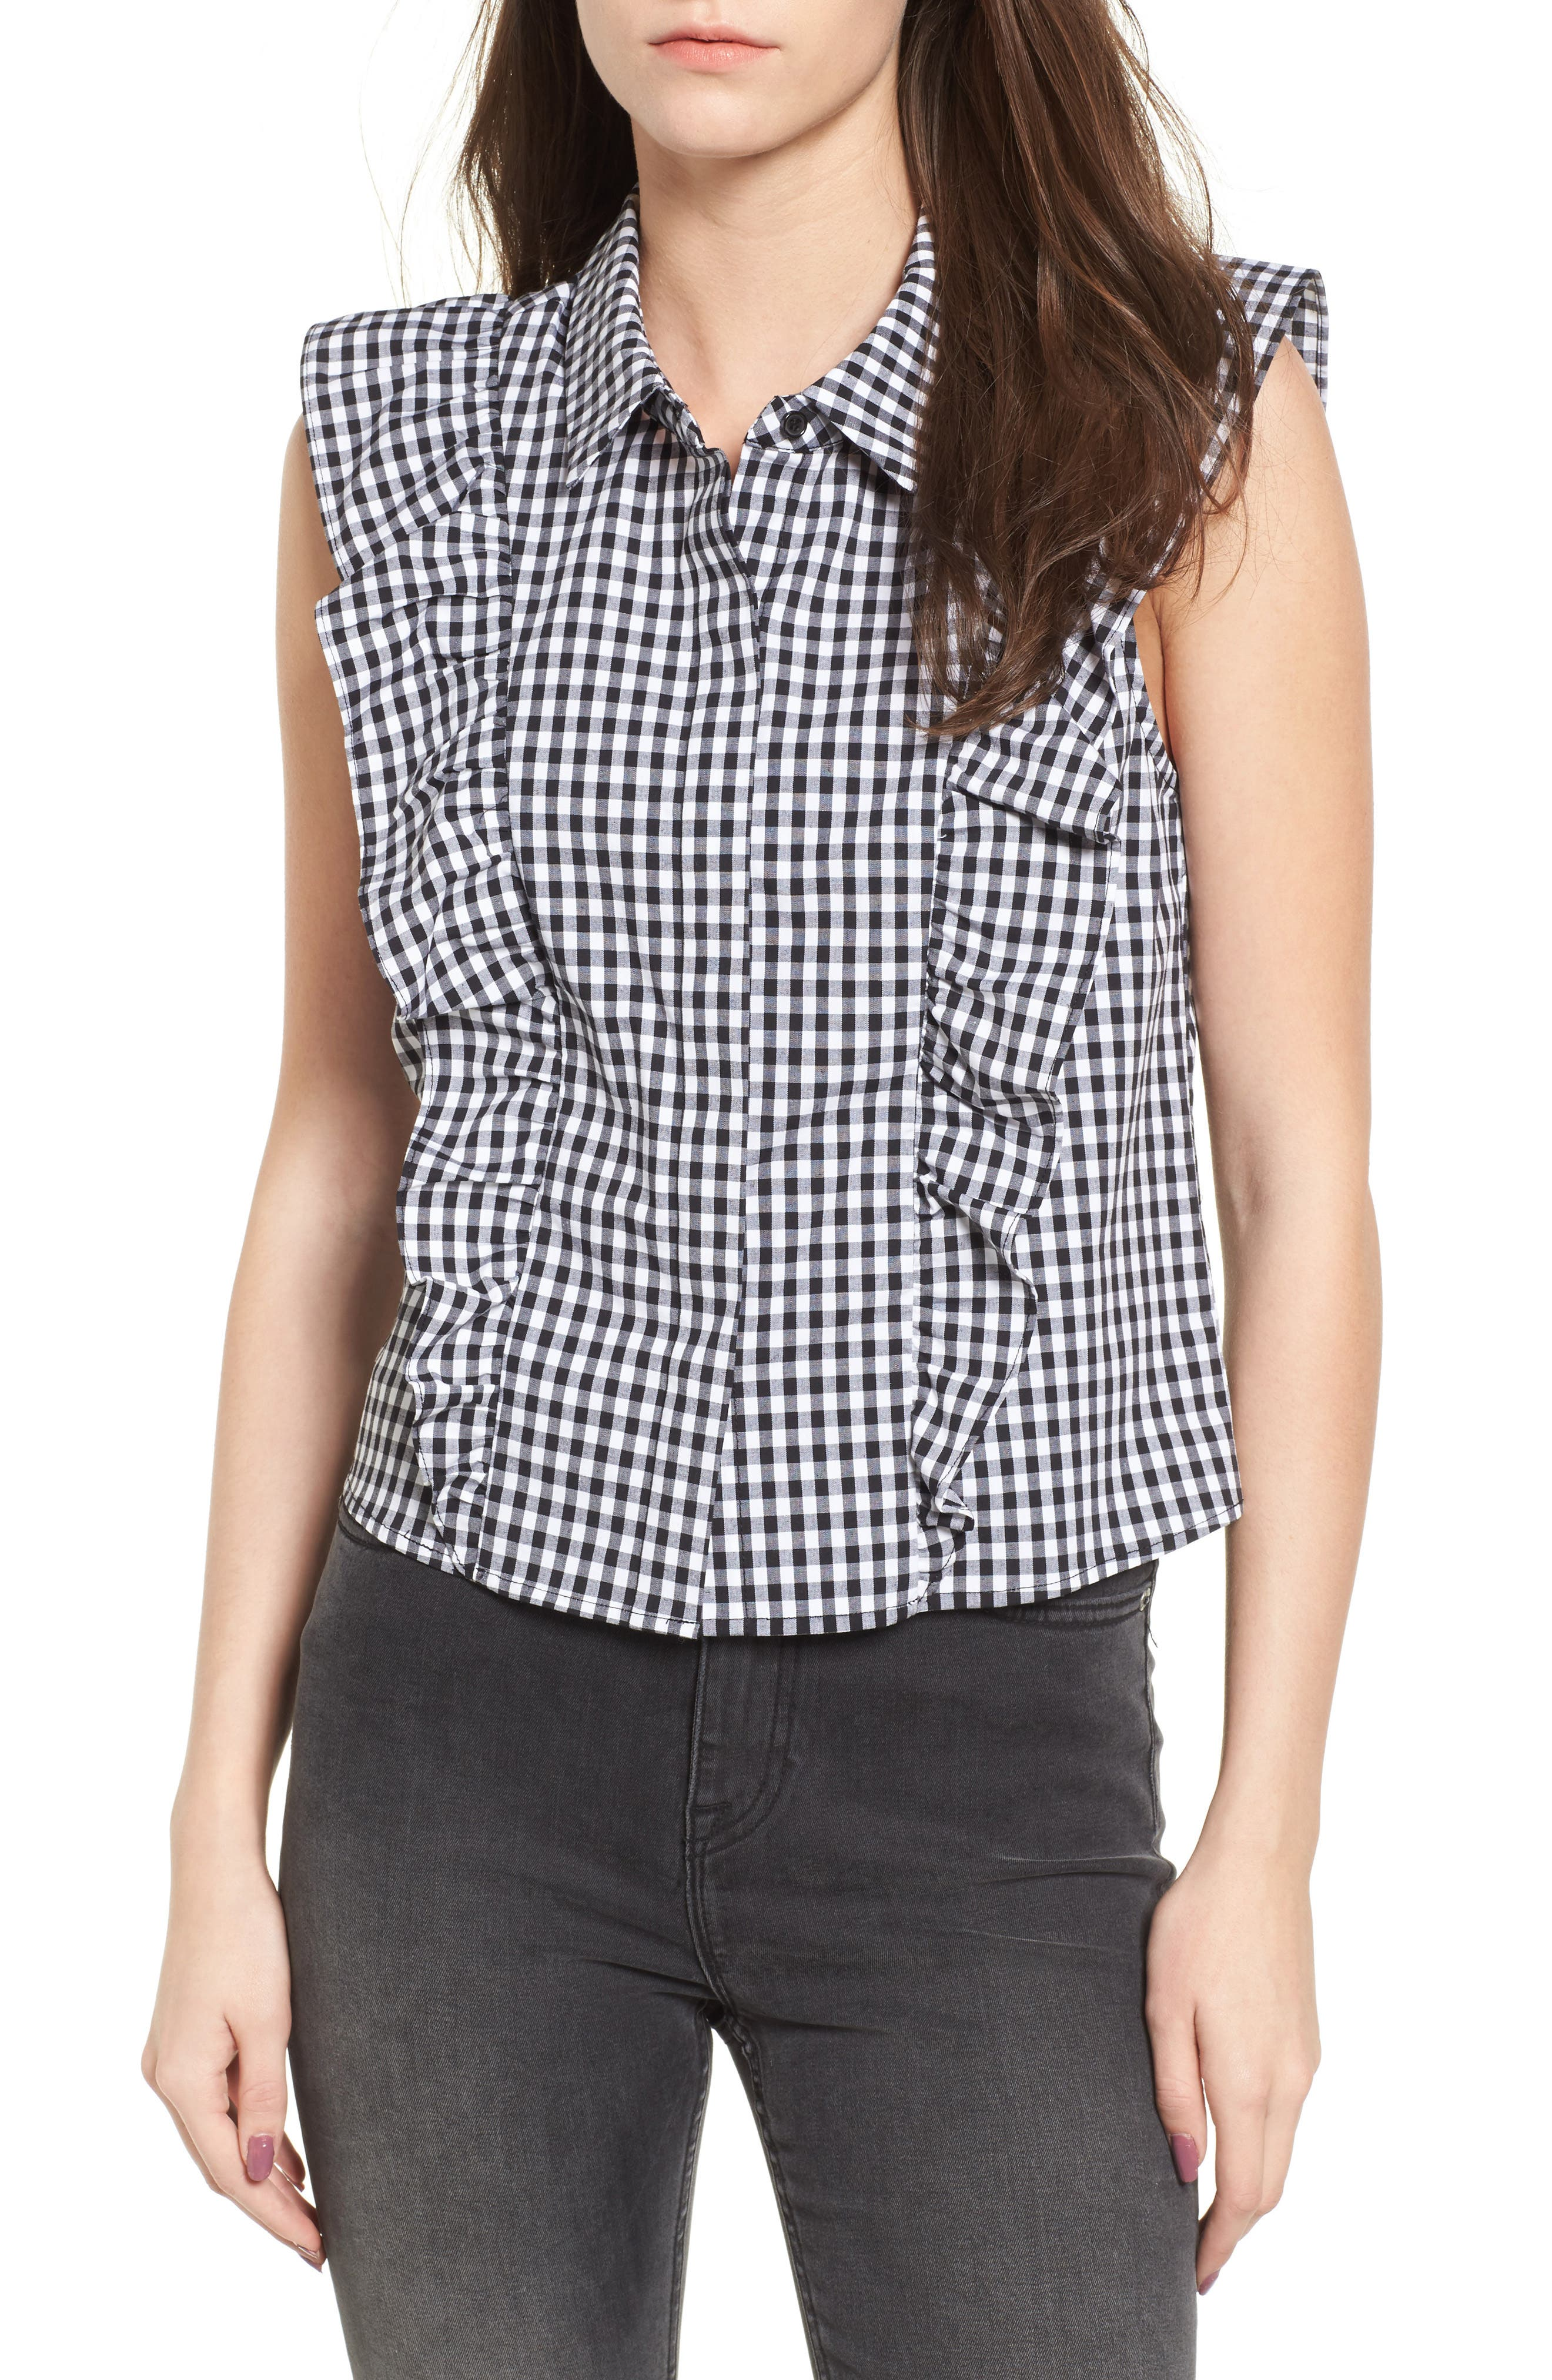 Ruffle Front Blouse,                         Main,                         color, Blkwht Gingham